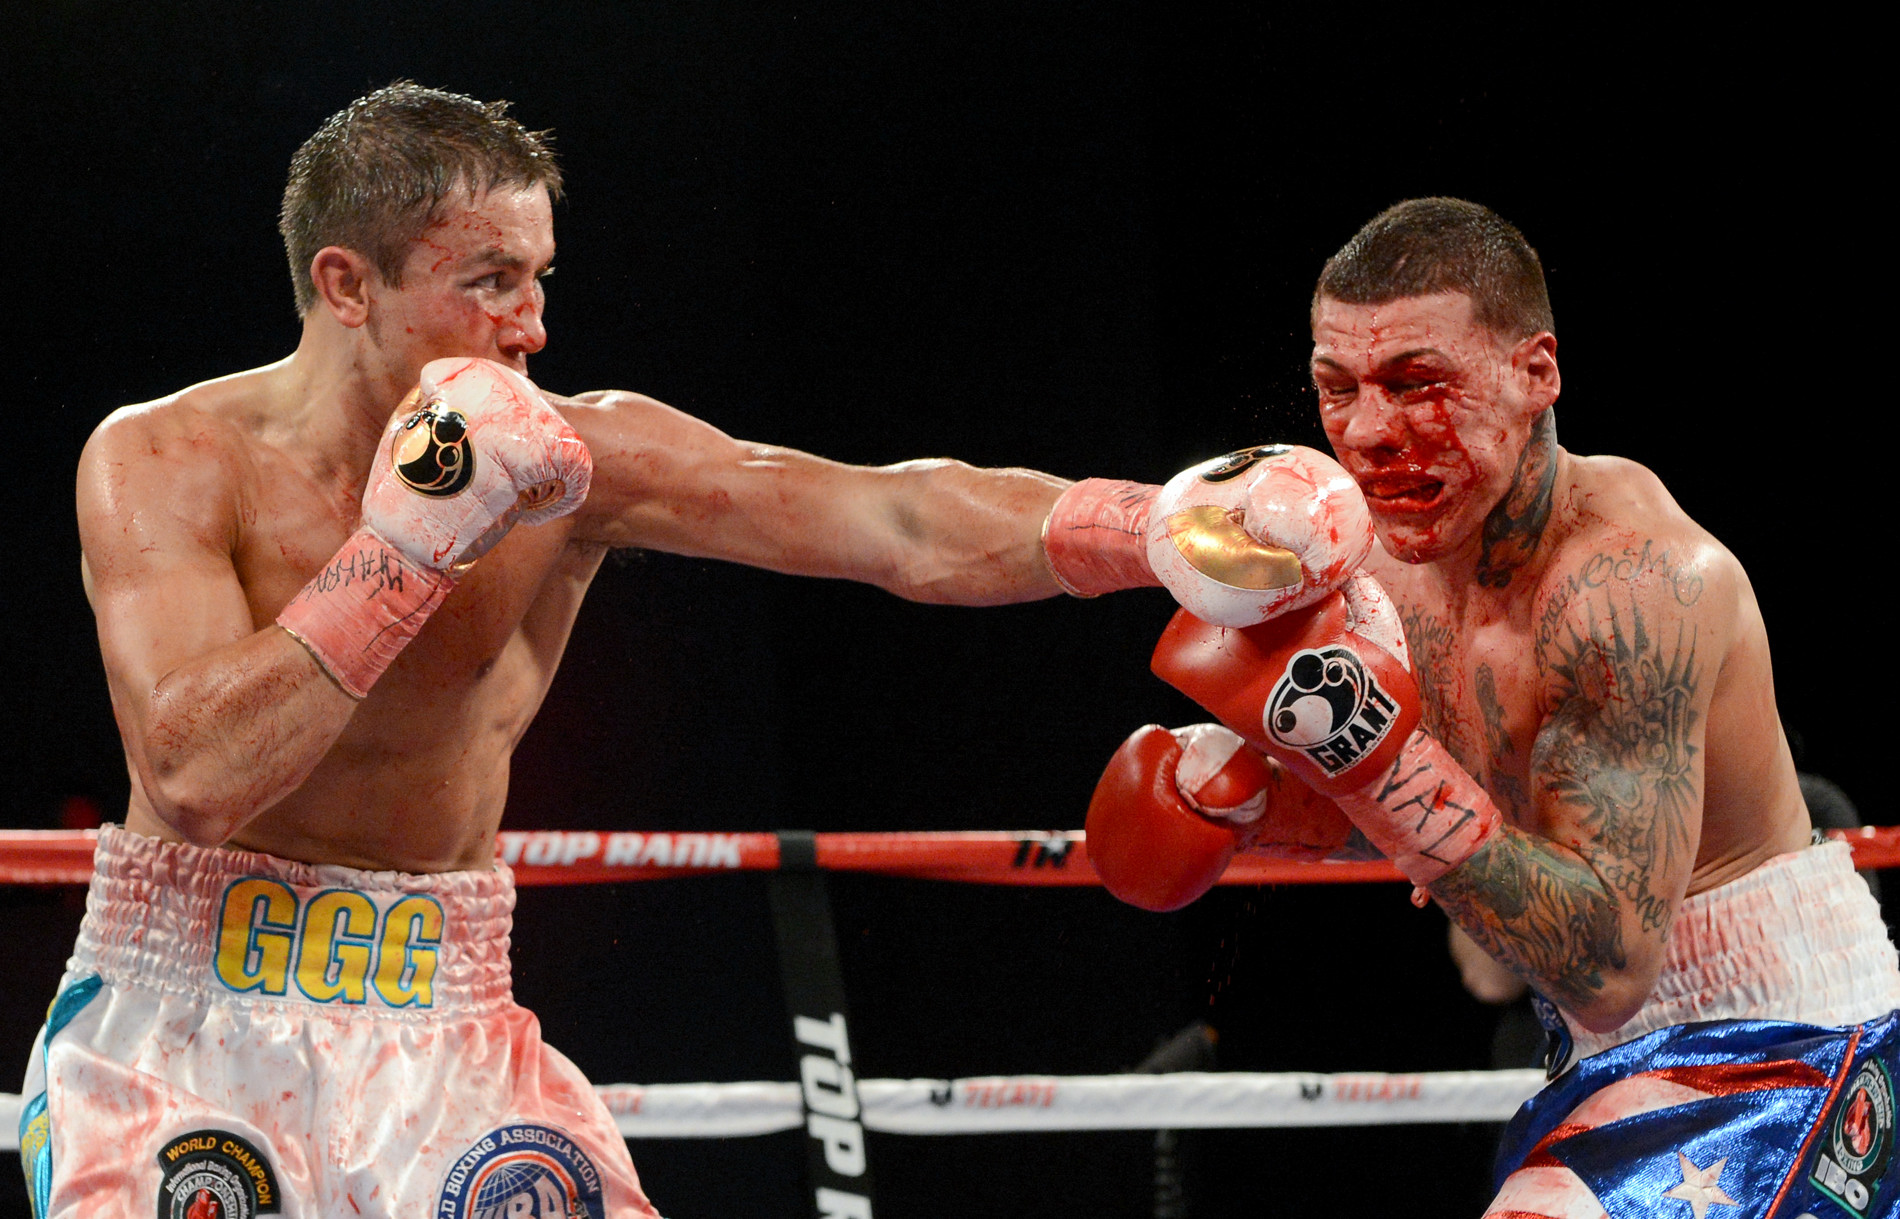 Gennady Golovkin stopped Gabriel Rosado in what turned out to be a one-sided bloody fight. Photo: Naoki Fukuda